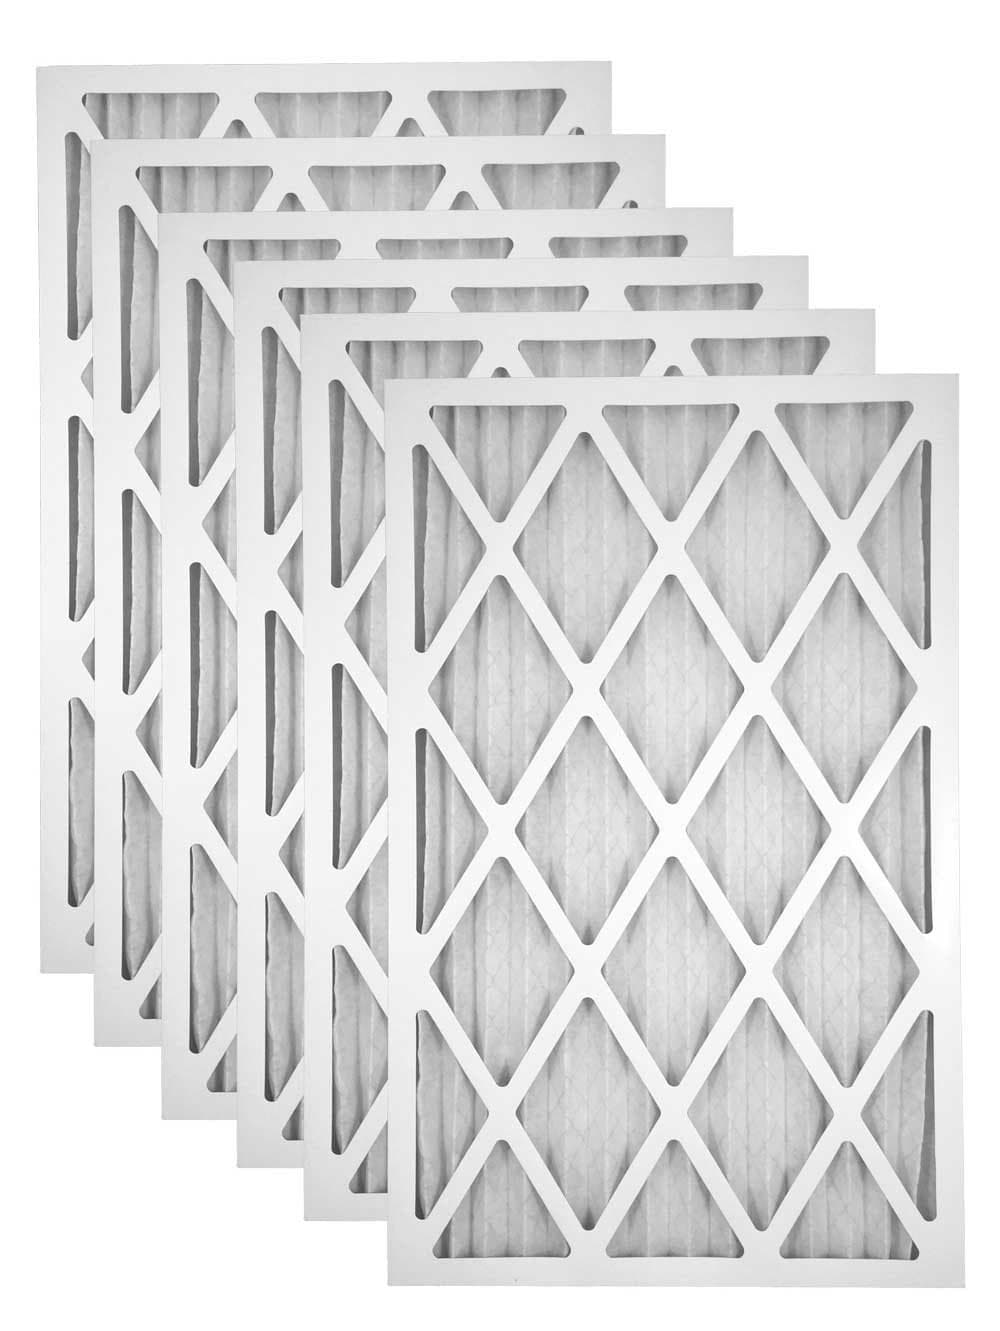 20x22x1 Merv 8 Pleated AC Furnace Filter - Case of 6